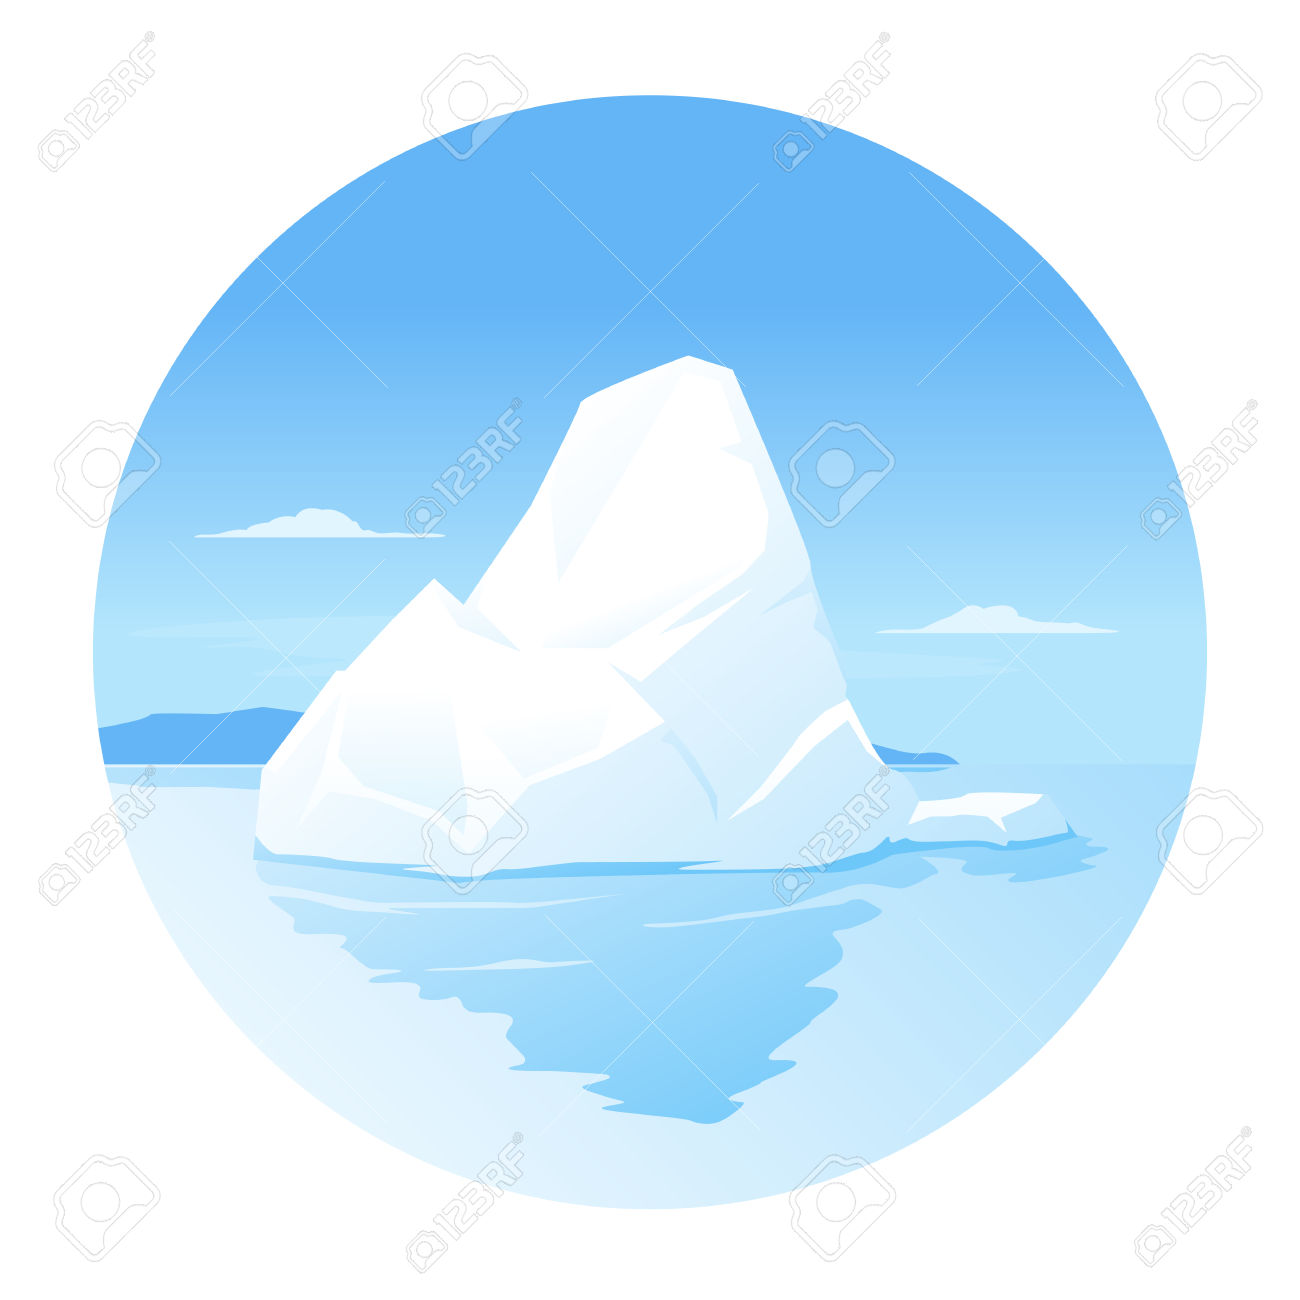 3,835 Icebergs Stock Vector Illustration And Royalty Free Icebergs.